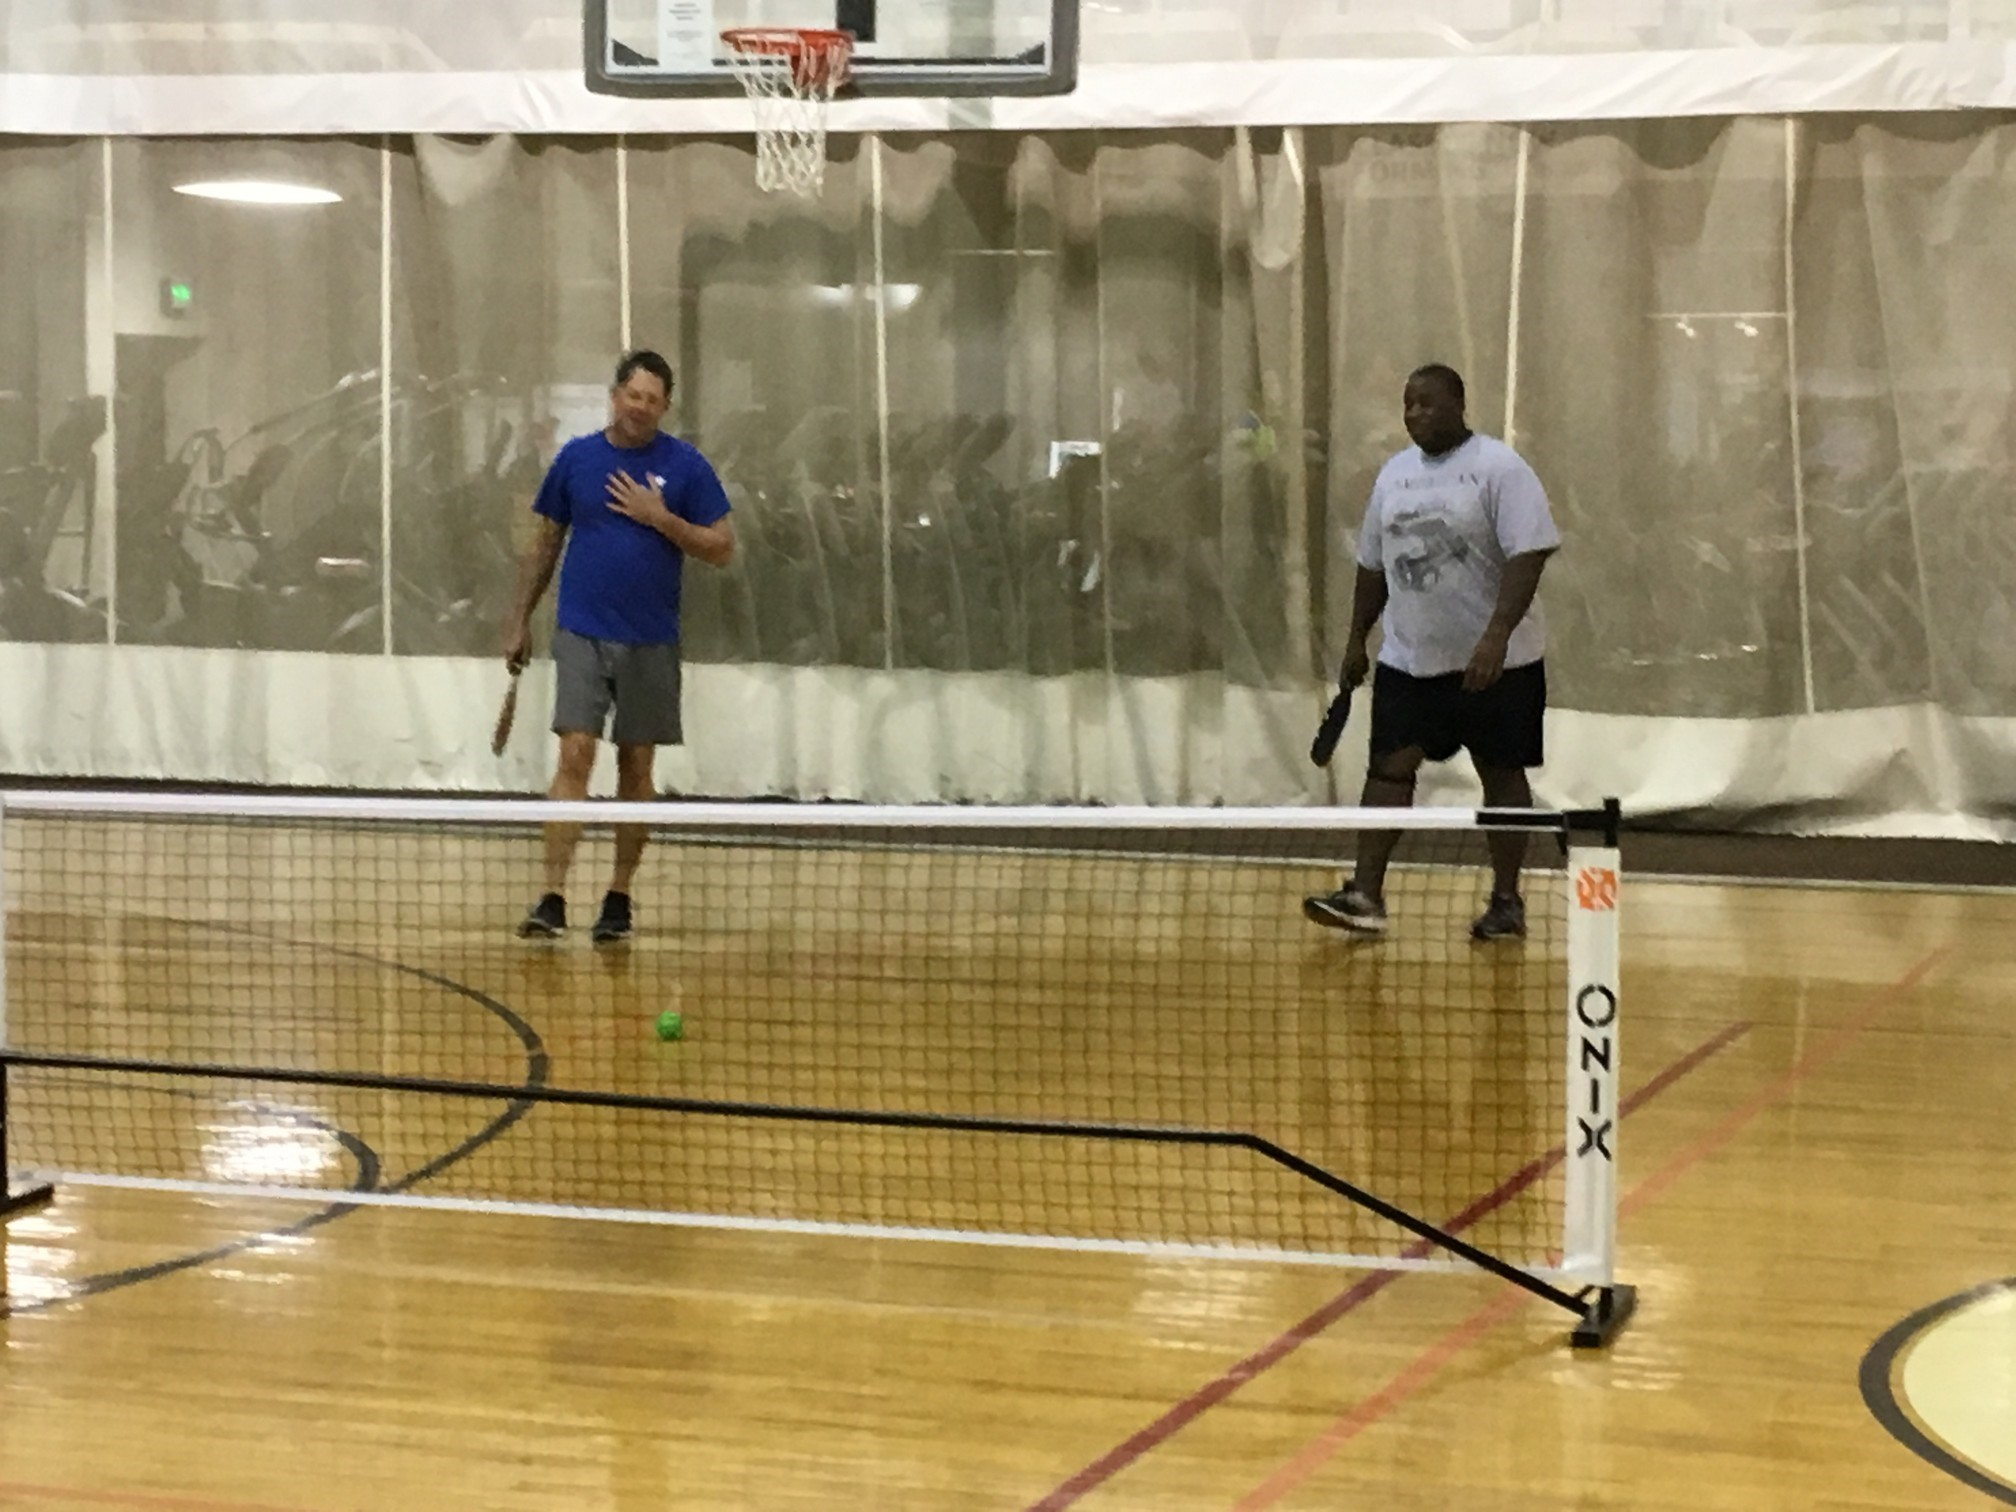 trussville pickleball, birmingham pickleball, pickleball, family pickleball, trussville ymca, trussville